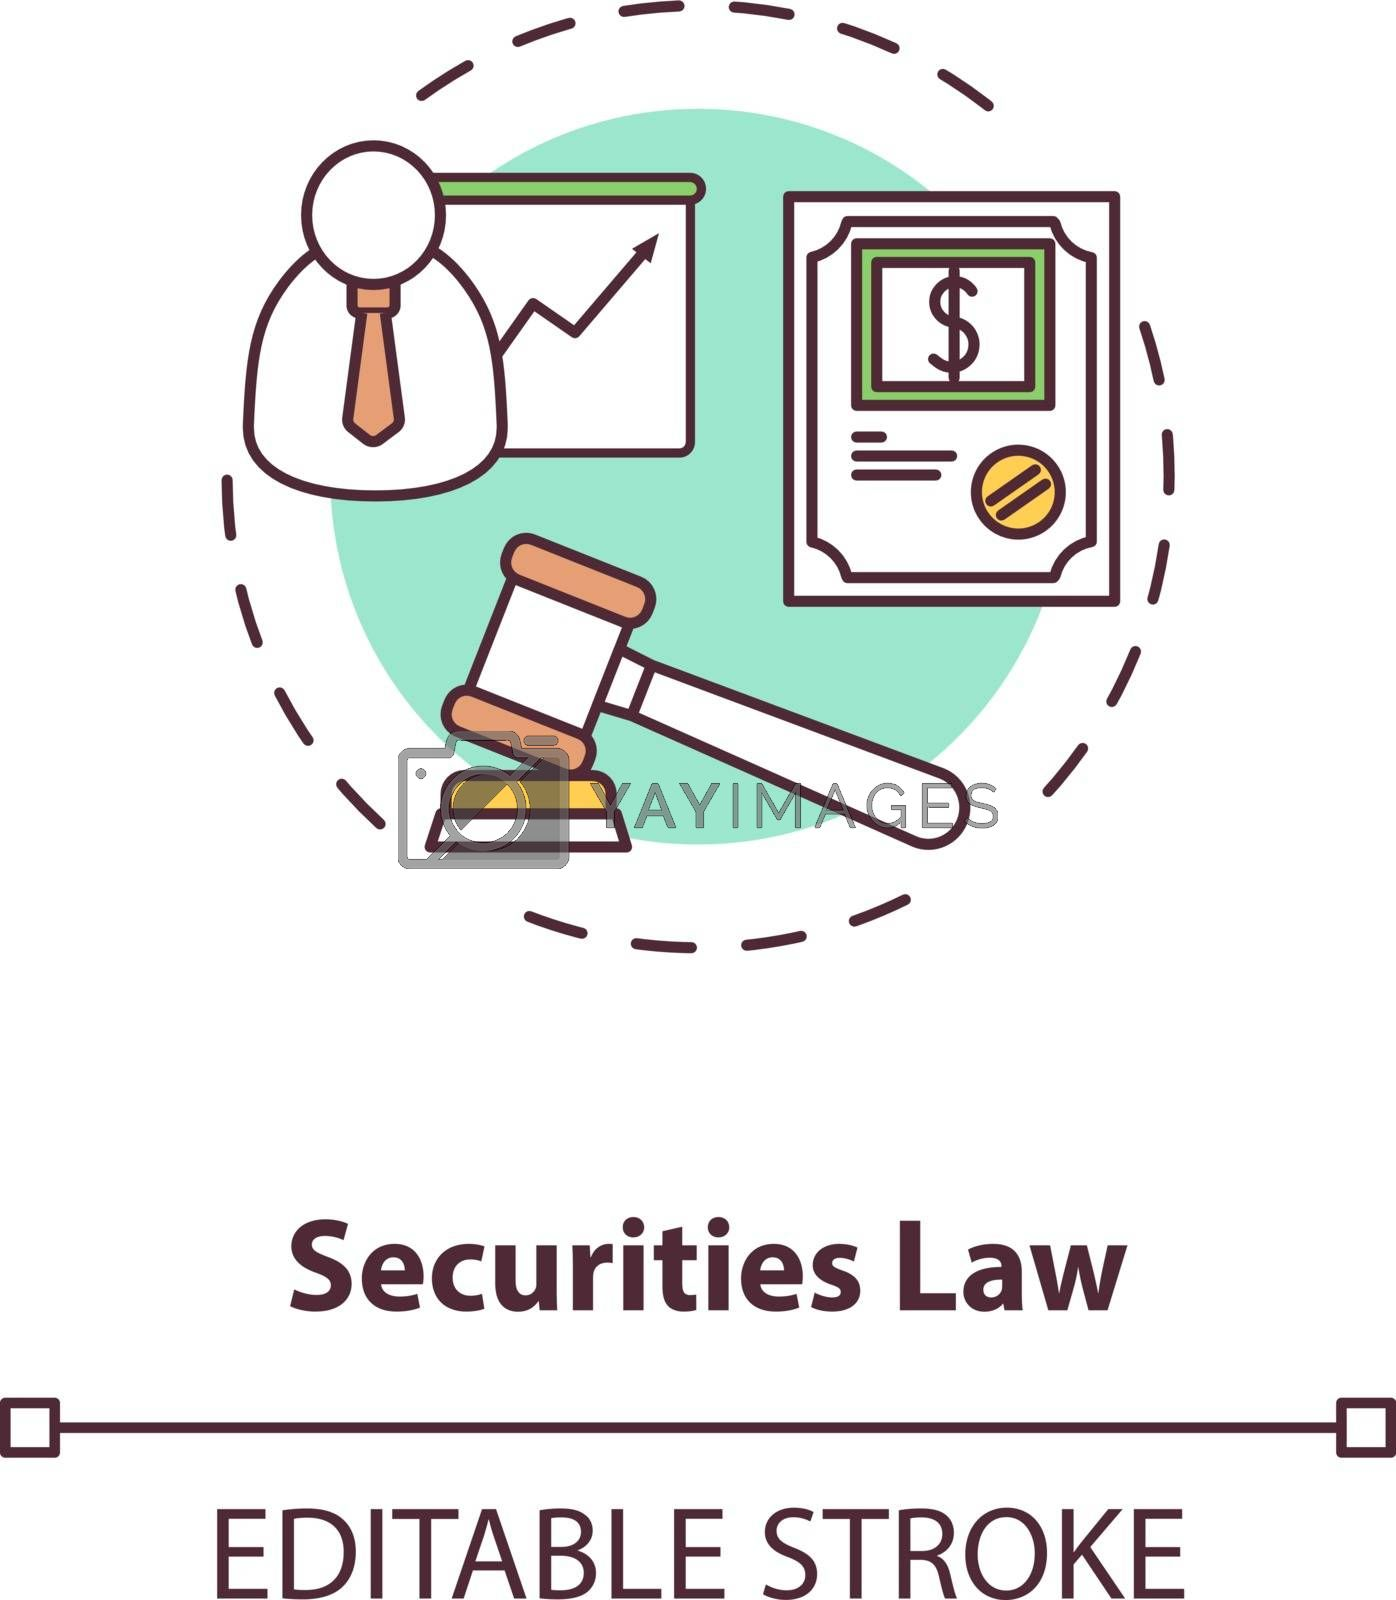 Securities law concept icon by bsd